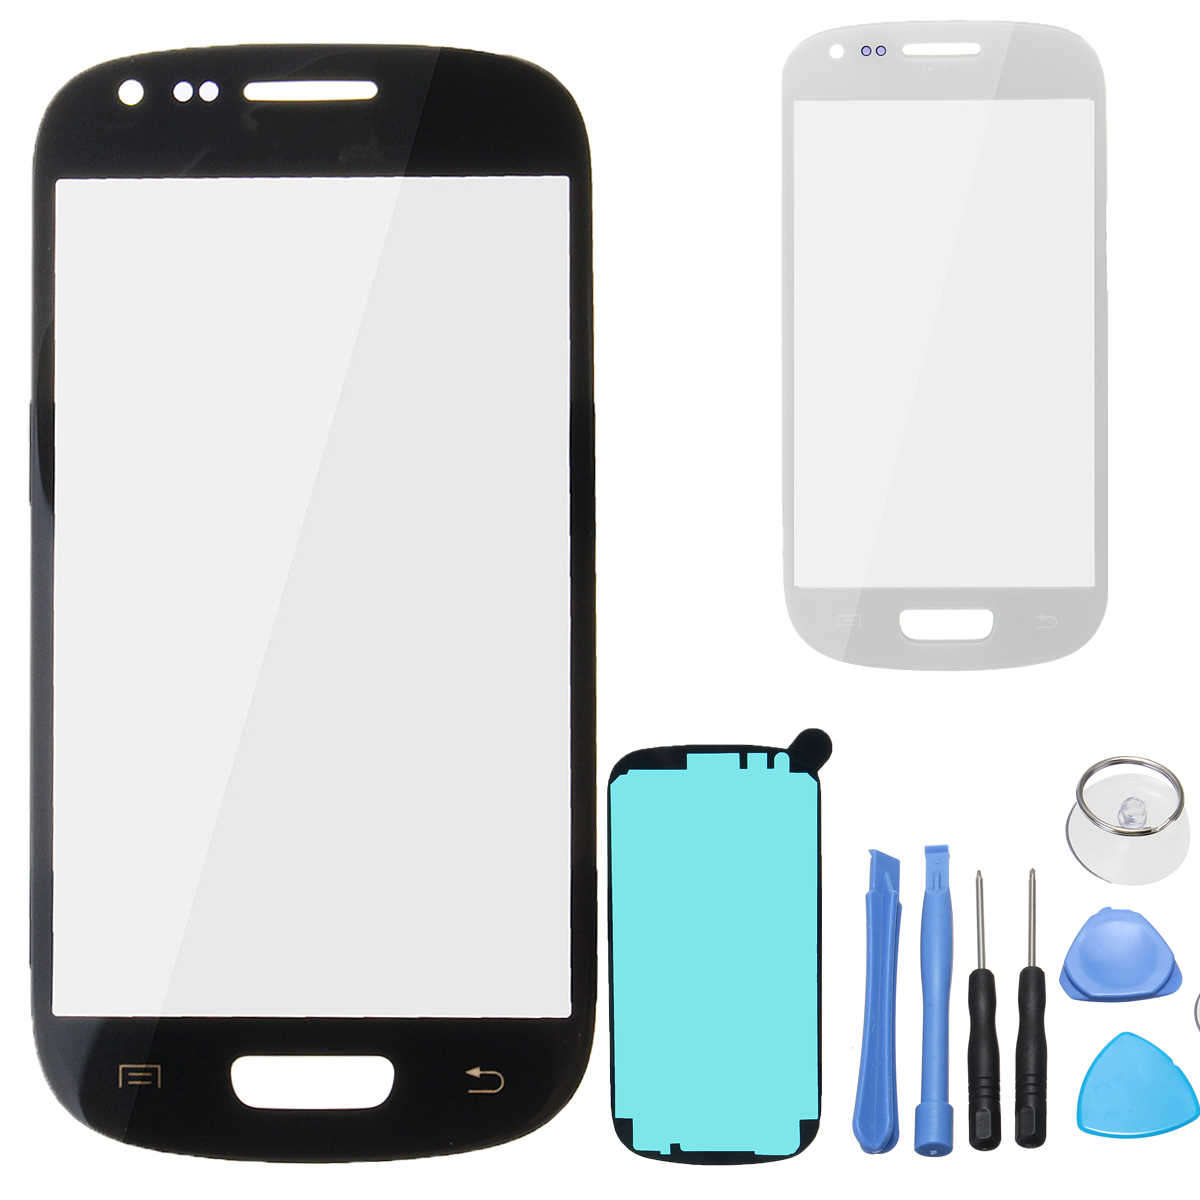 LEORY Black/White Mobile Phone Touch Screen w/ Disassemble Tool Sticker Replacement Touch Panels For Samsung Galaxy S3 mini i819